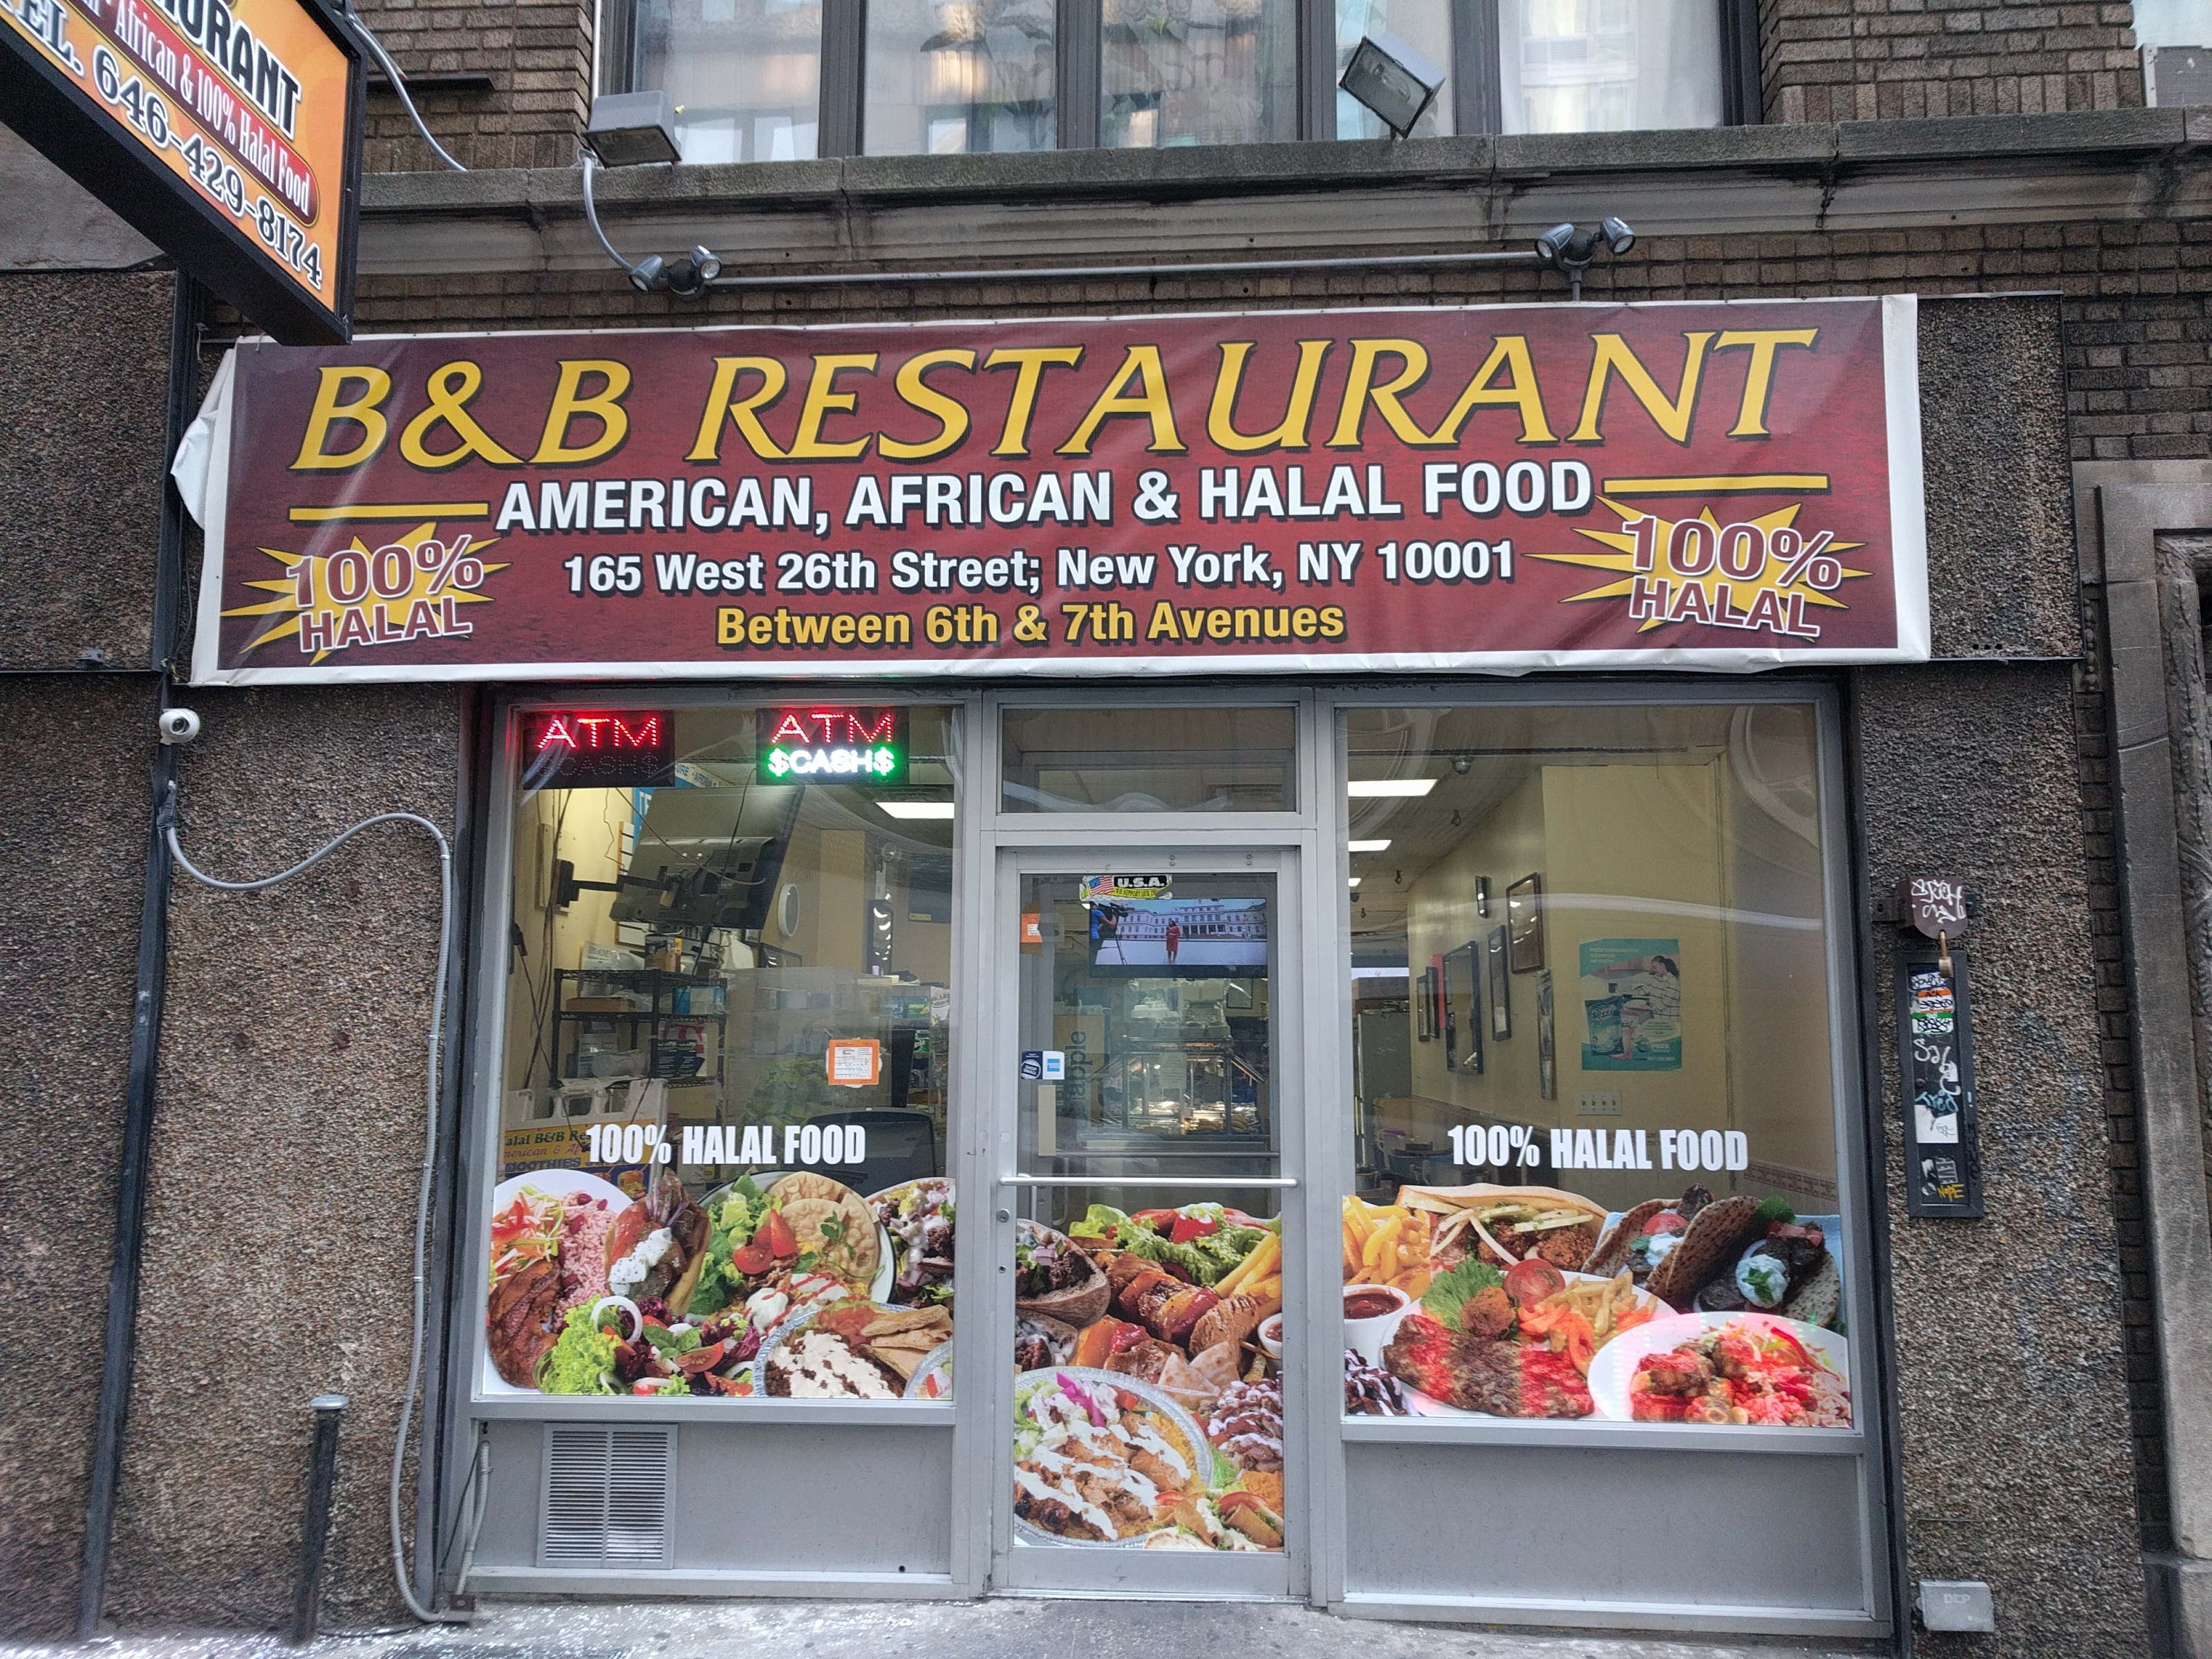 Chelsea's B & B provides a buffet of West African fare